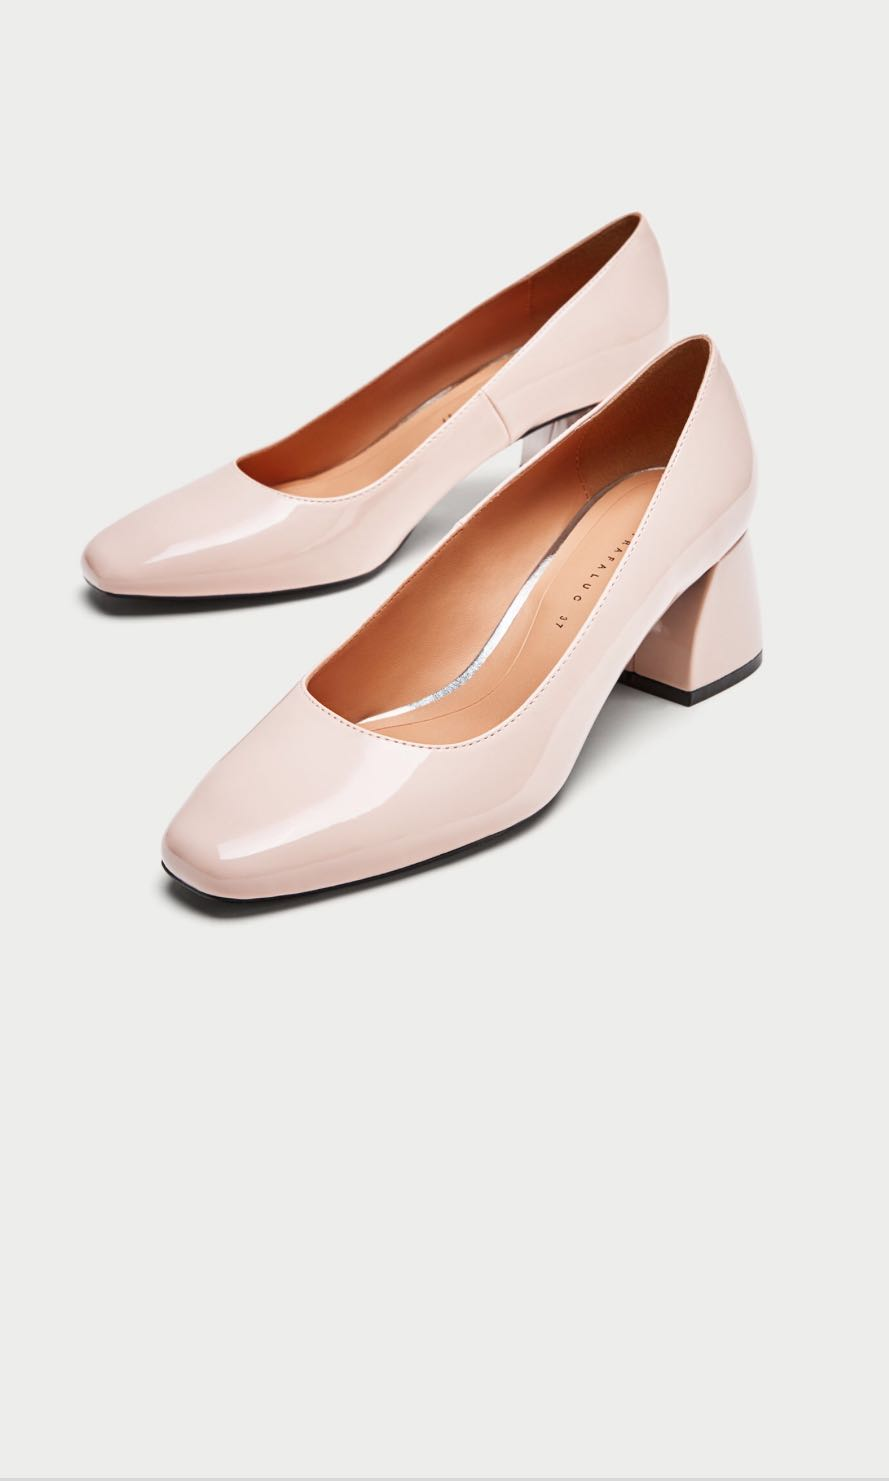 6e61c336238 Zara Mid Heel Patent Court Shoes Blush Pink